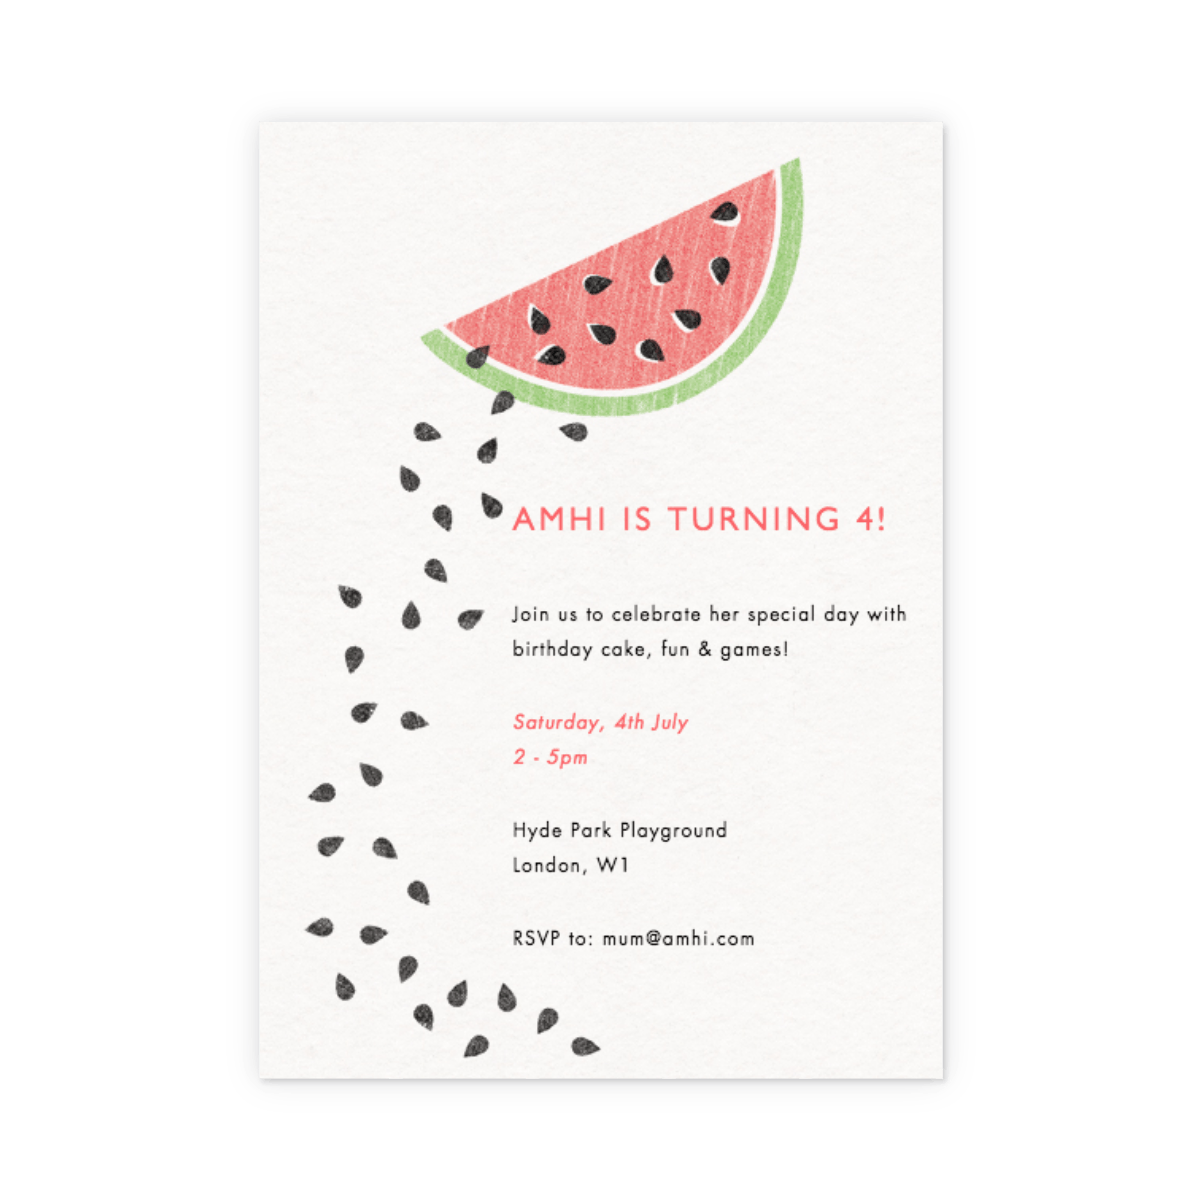 Https%3a%2f%2fwww.papier.com%2fproduct image%2f195%2f4%2fwatermelon 68 front 1542296195.png?ixlib=rb 1.1